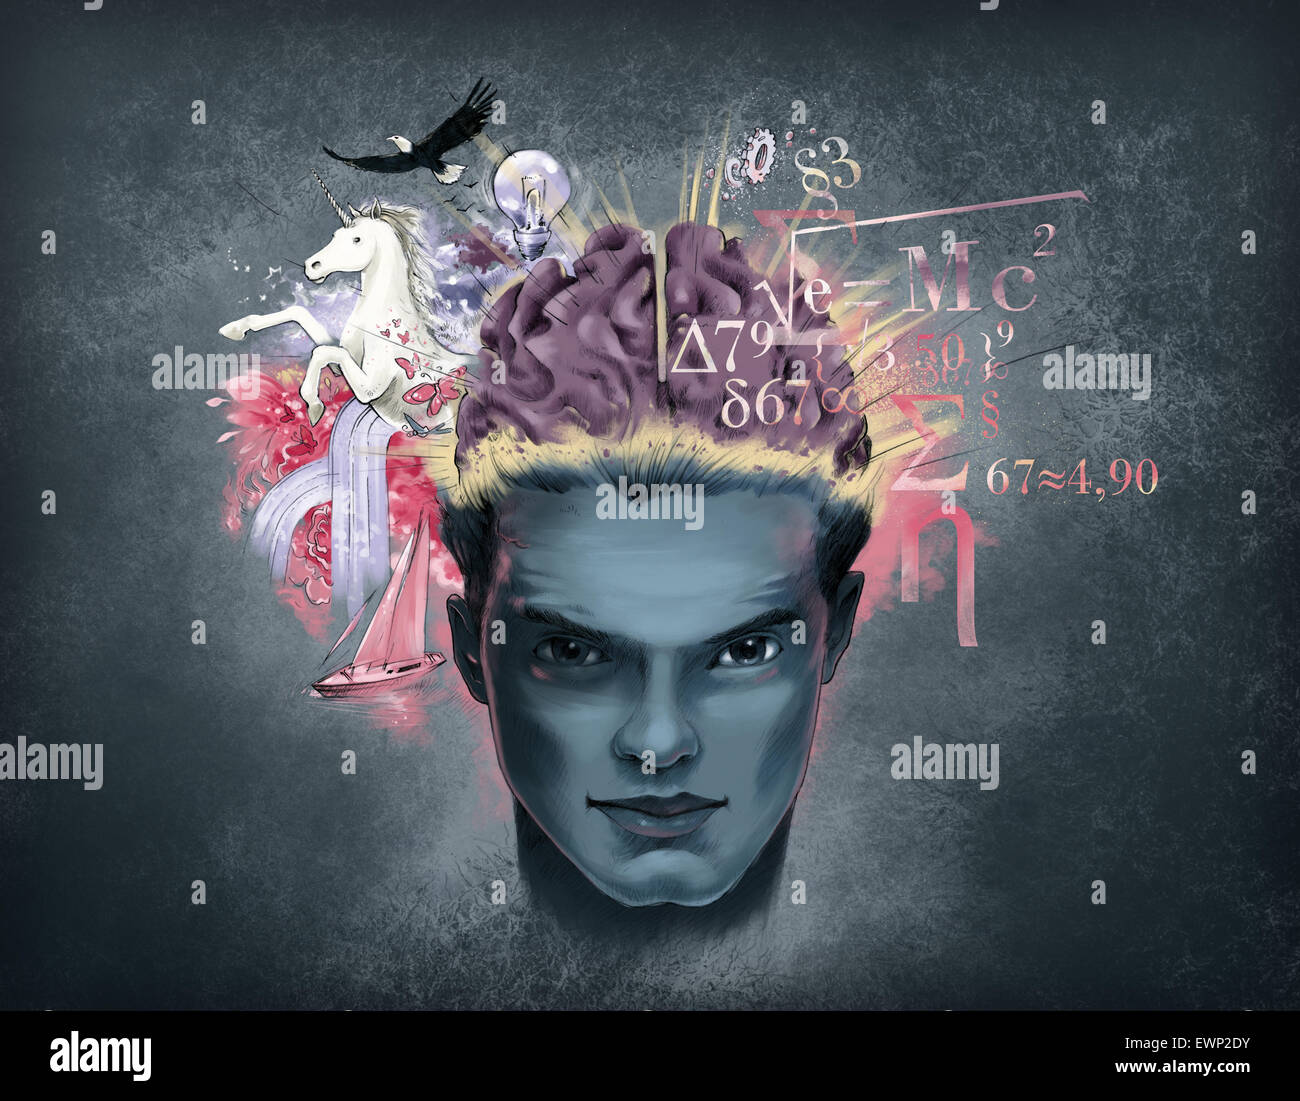 Illustrative representation of brain mechanism - Stock Image